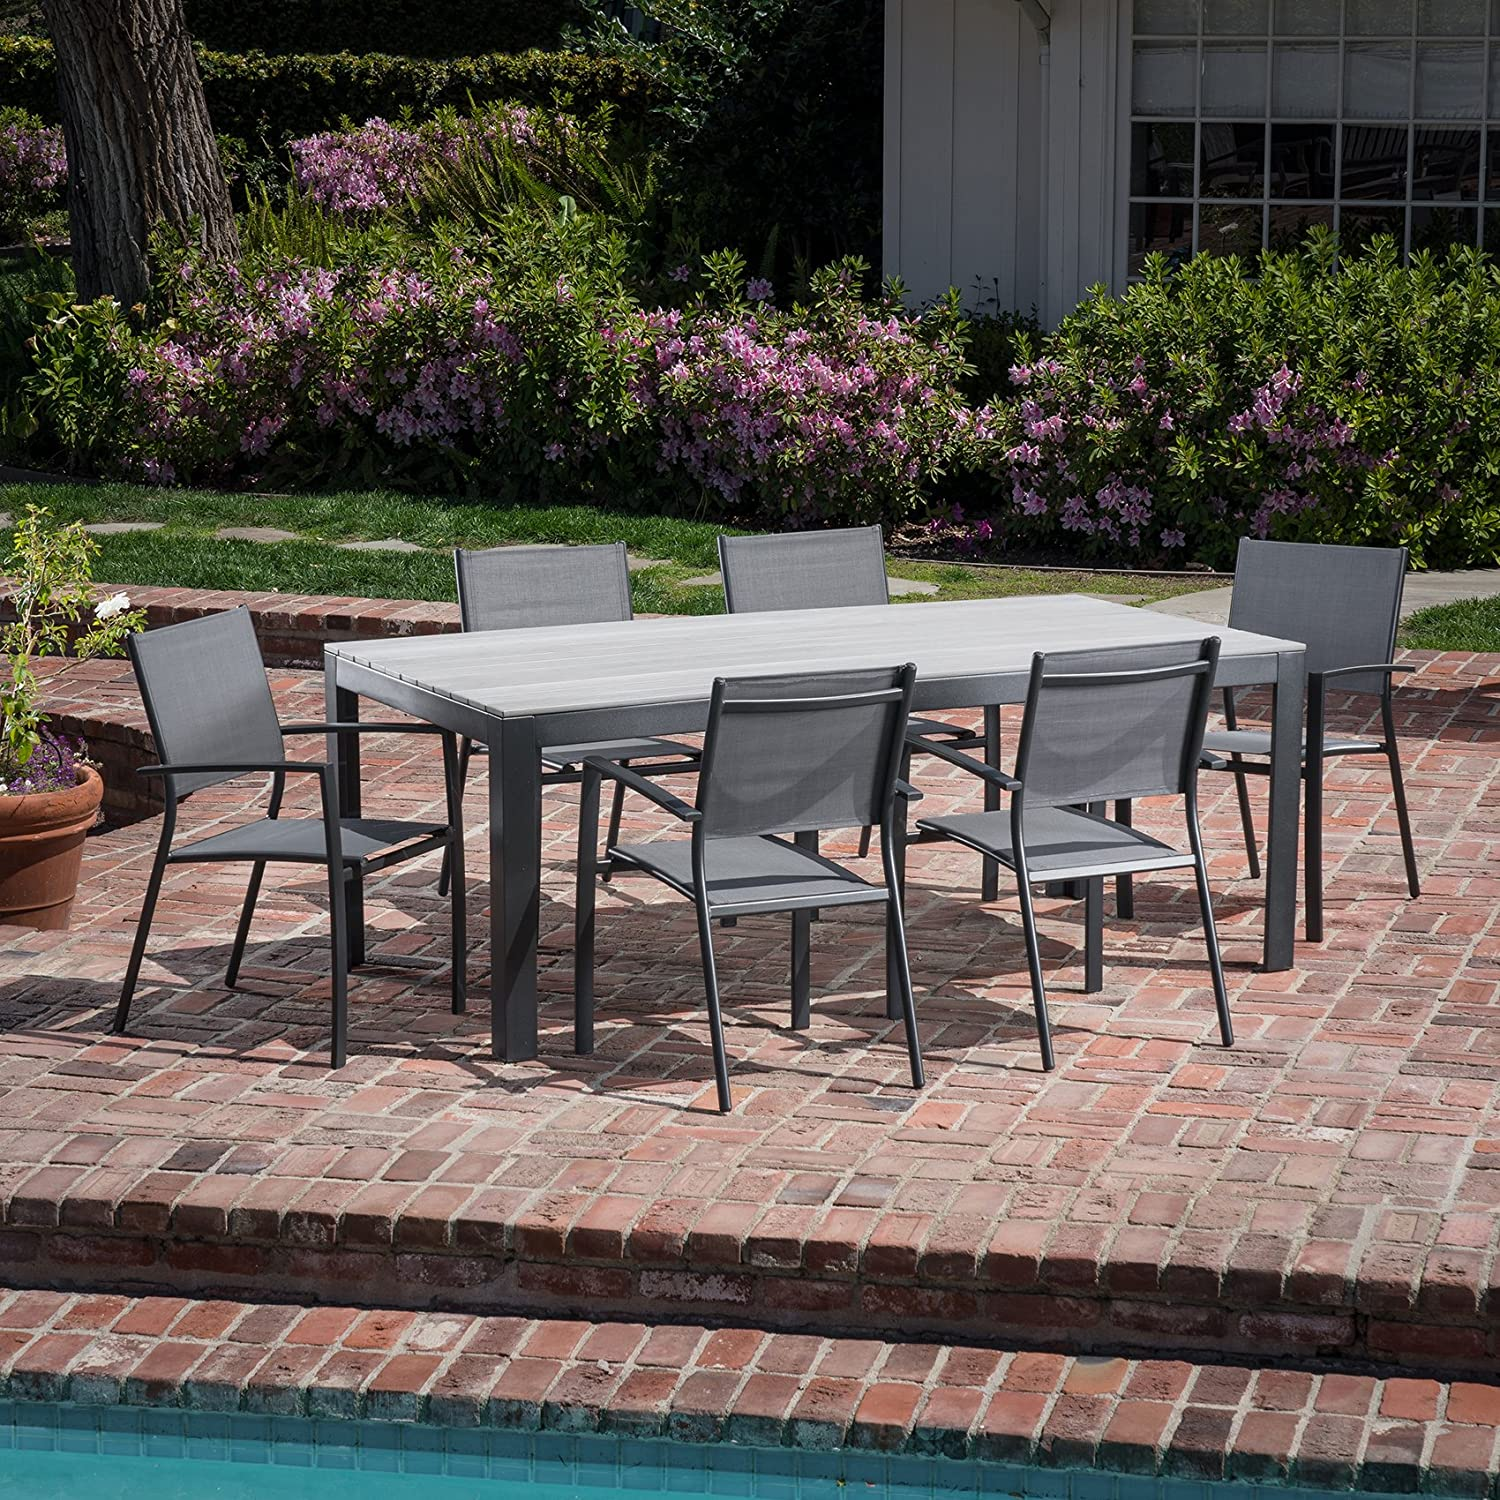 Cambridge YUMADN7PC-GRY Yuma 7-Piece 6 Sling Arm Chairs and a Faux Wood Table Outdoor Patio Dining Set, Gray